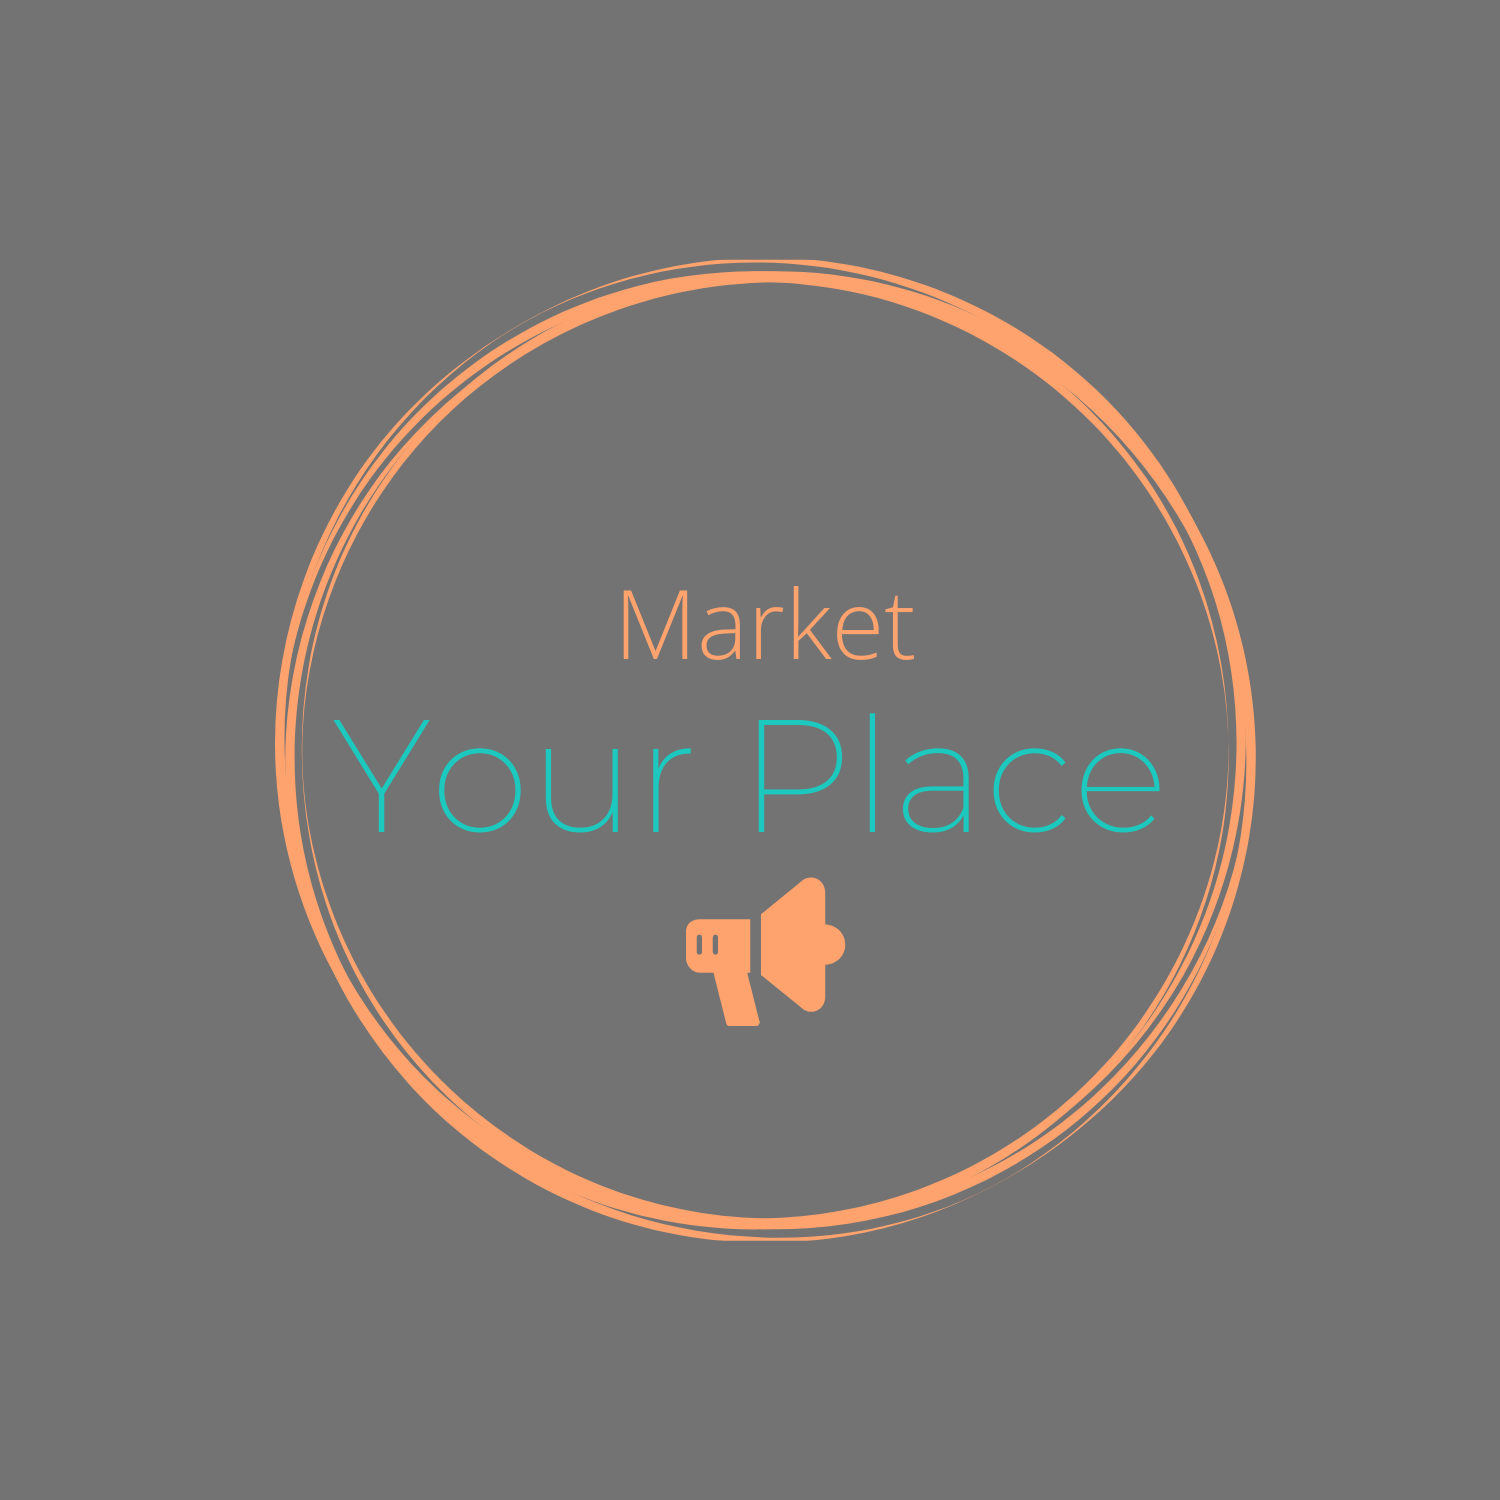 Market Your Place - Your Place Solutions Services